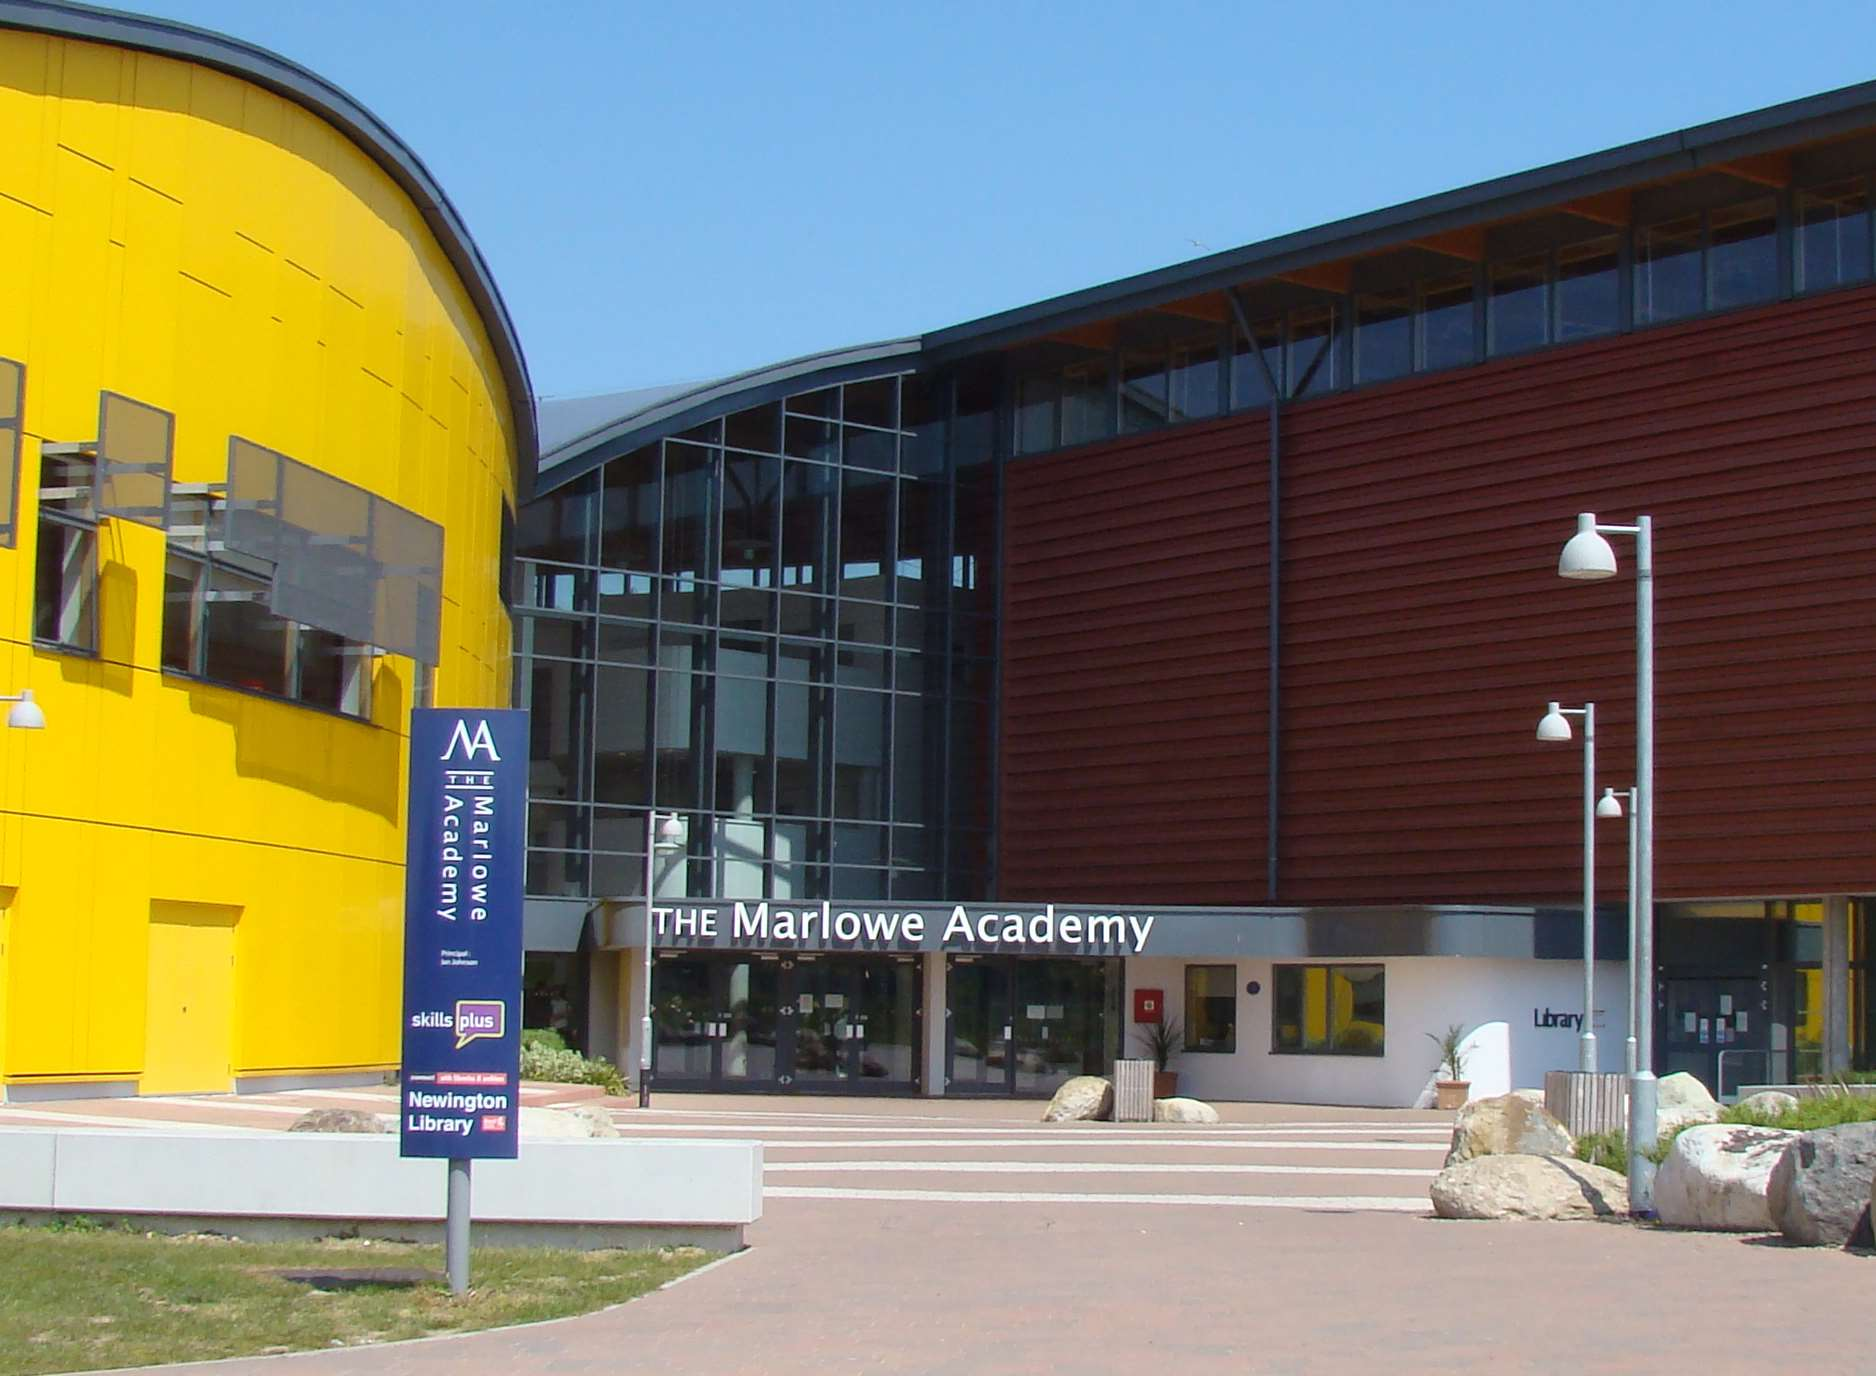 39 Serious Concerns 39 Over Ramsgate 39 S Marlowe Academy After Ofsted Inspection